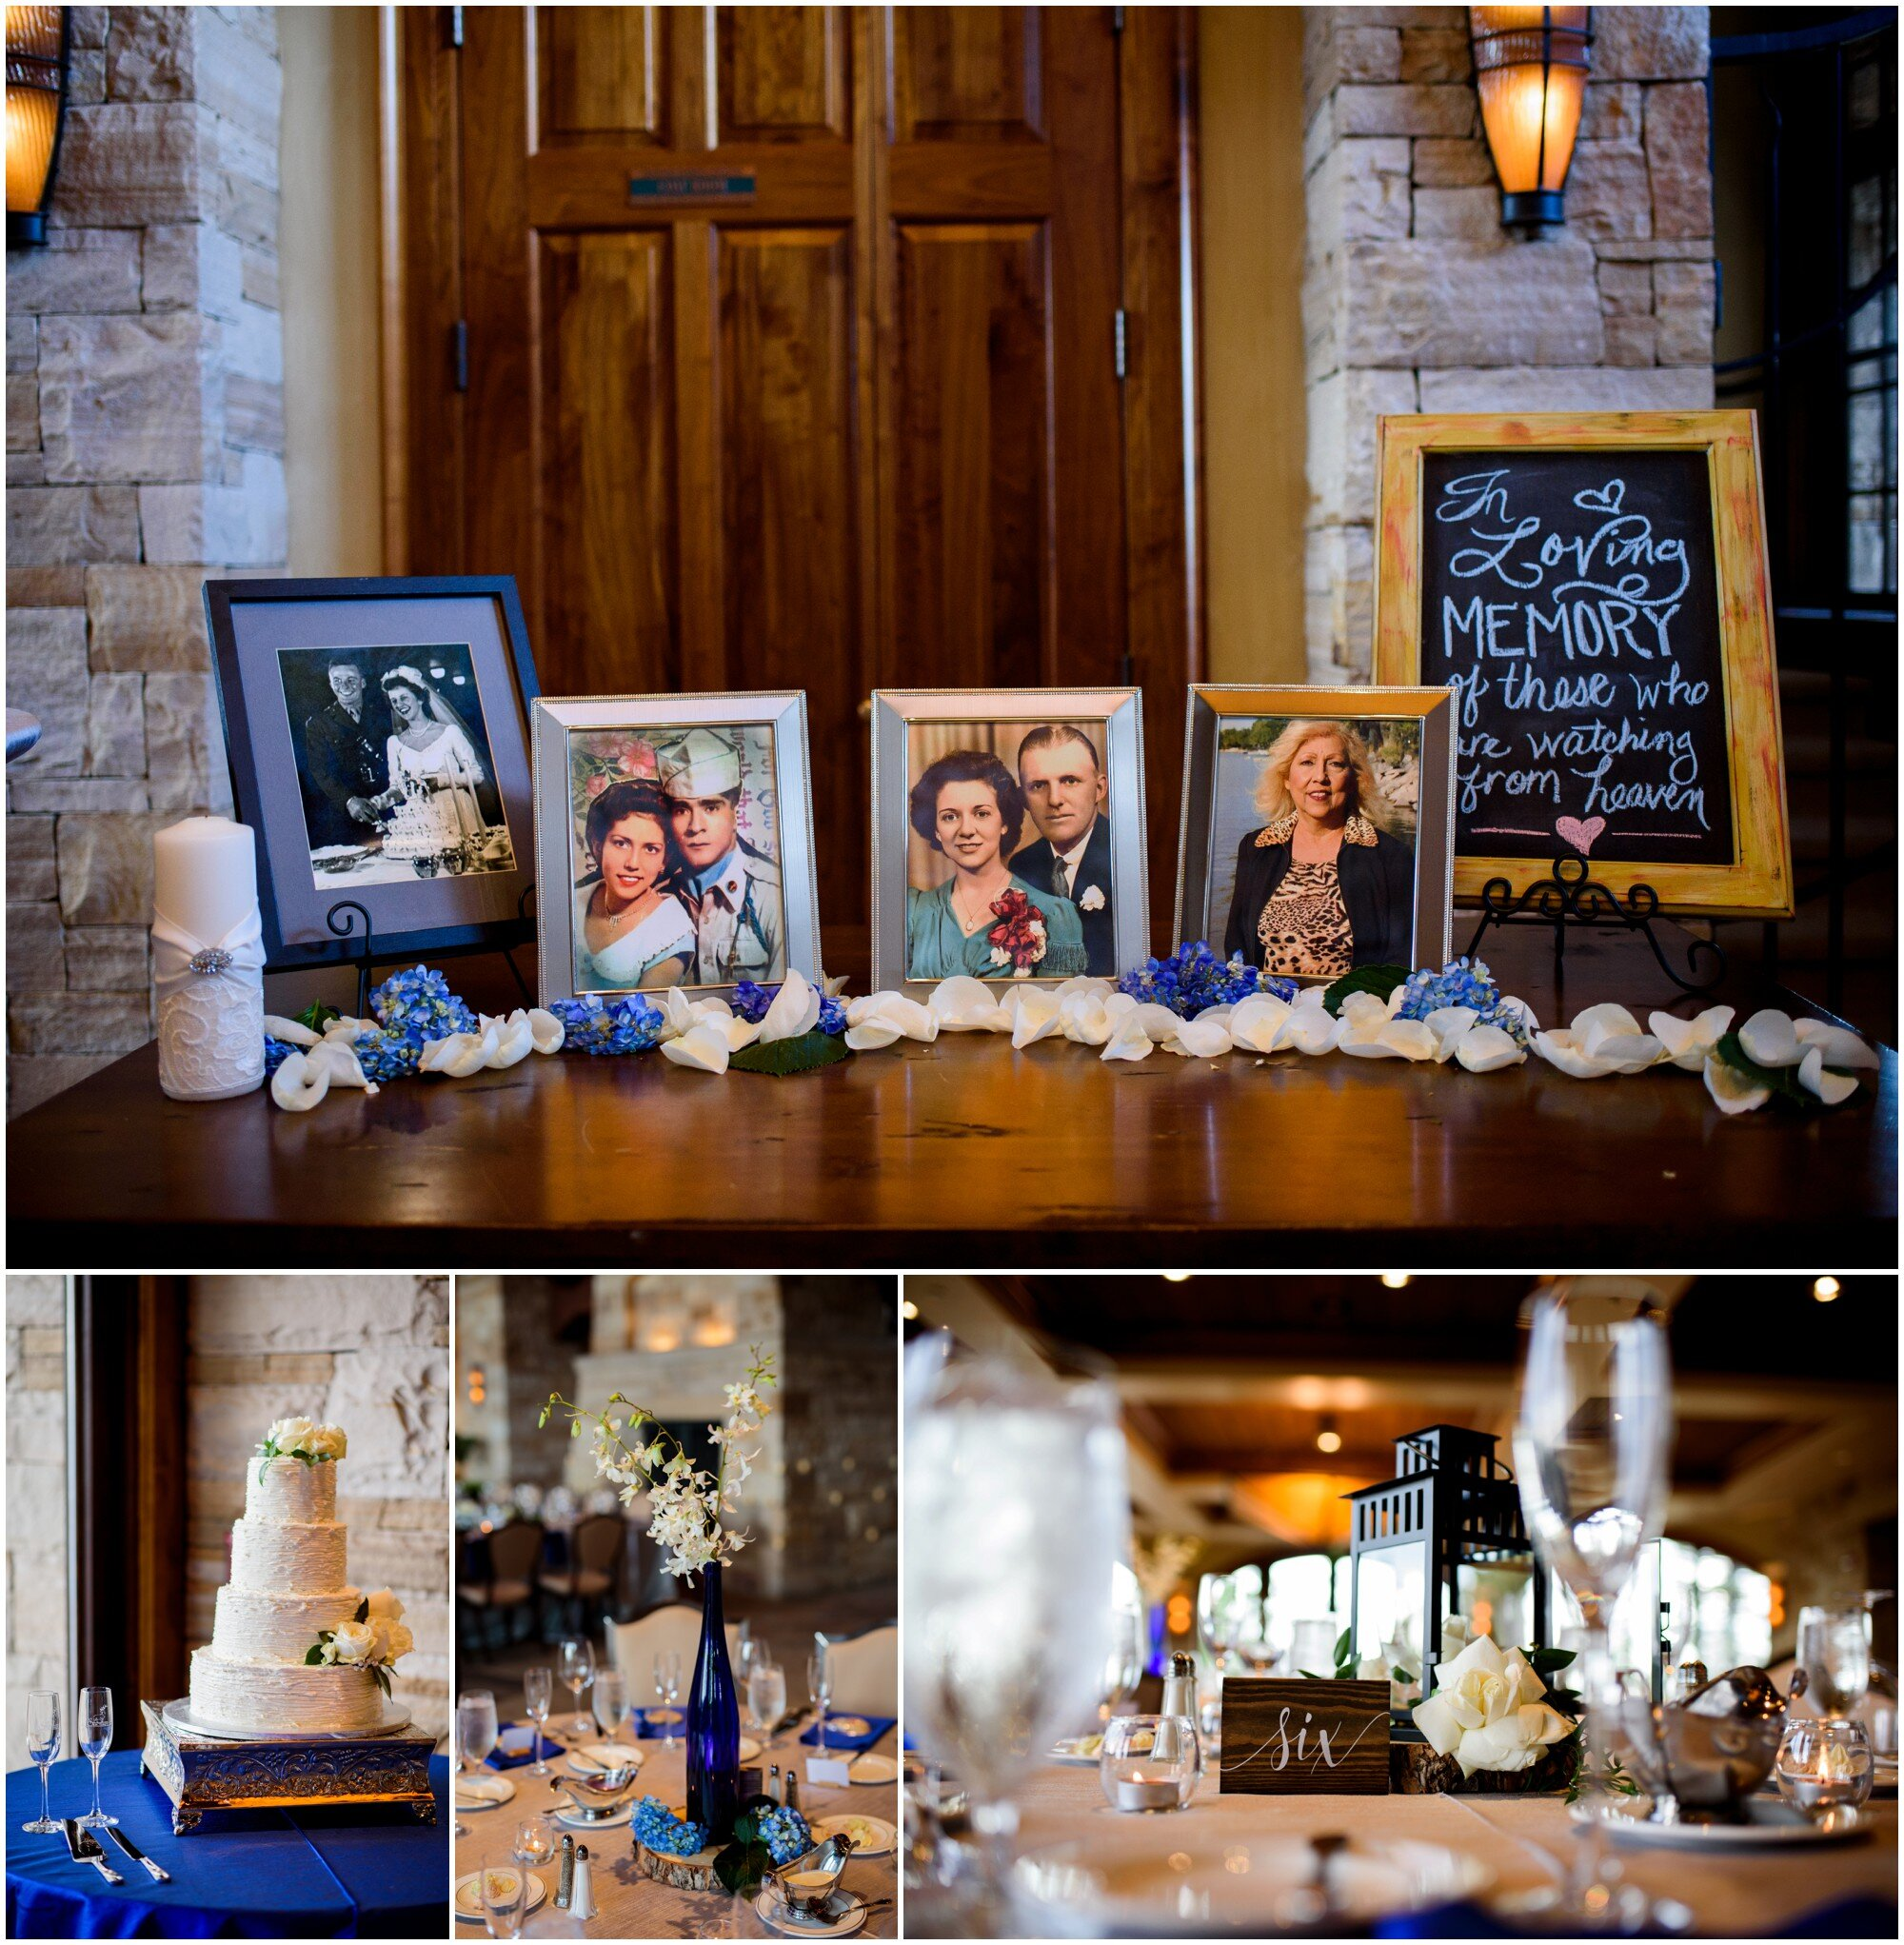 wedding details and in memory table